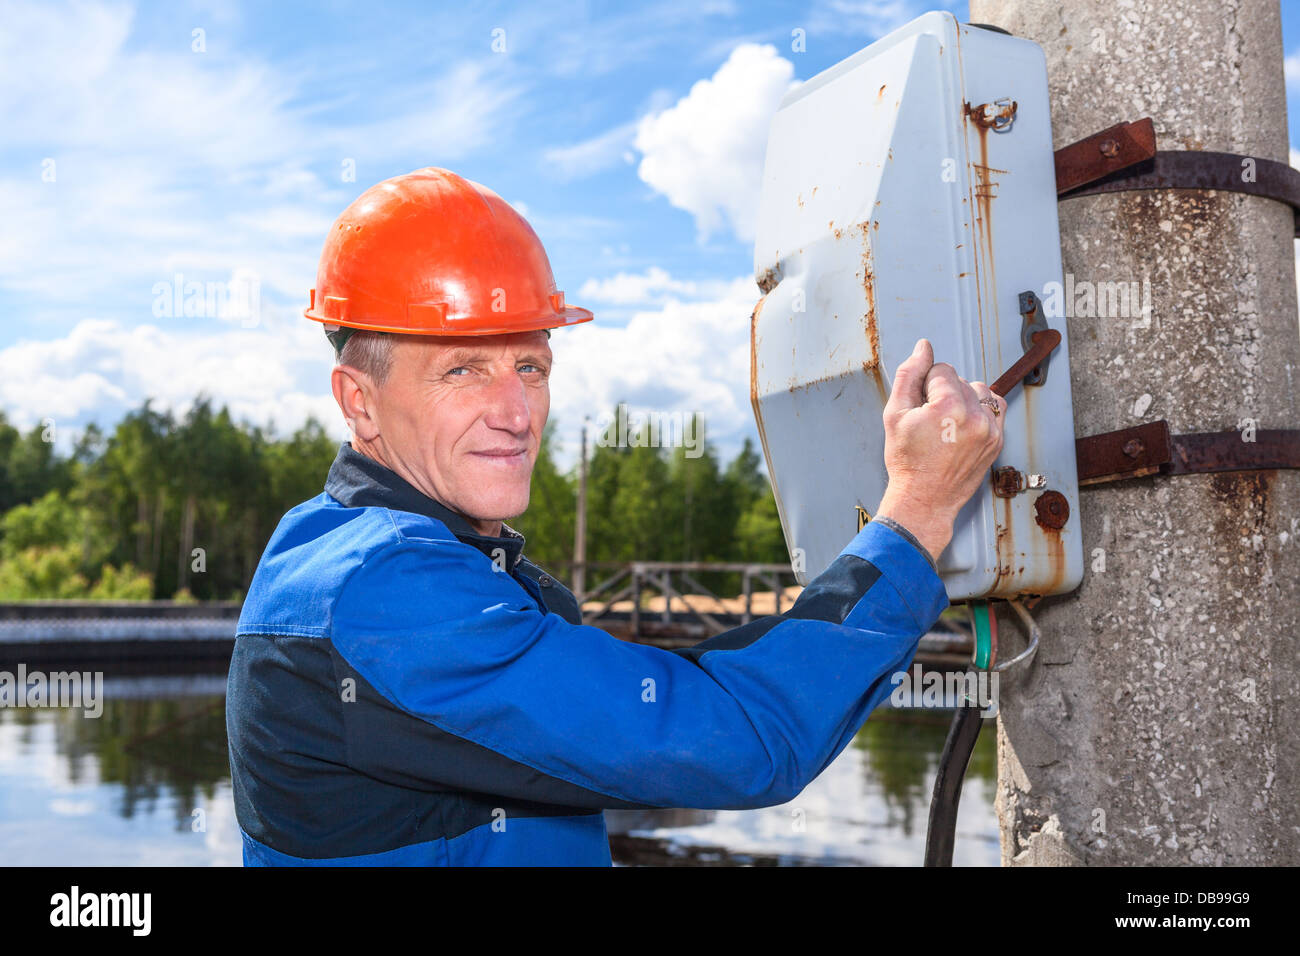 Caucasian senior worker man turning the power switch - Stock Image